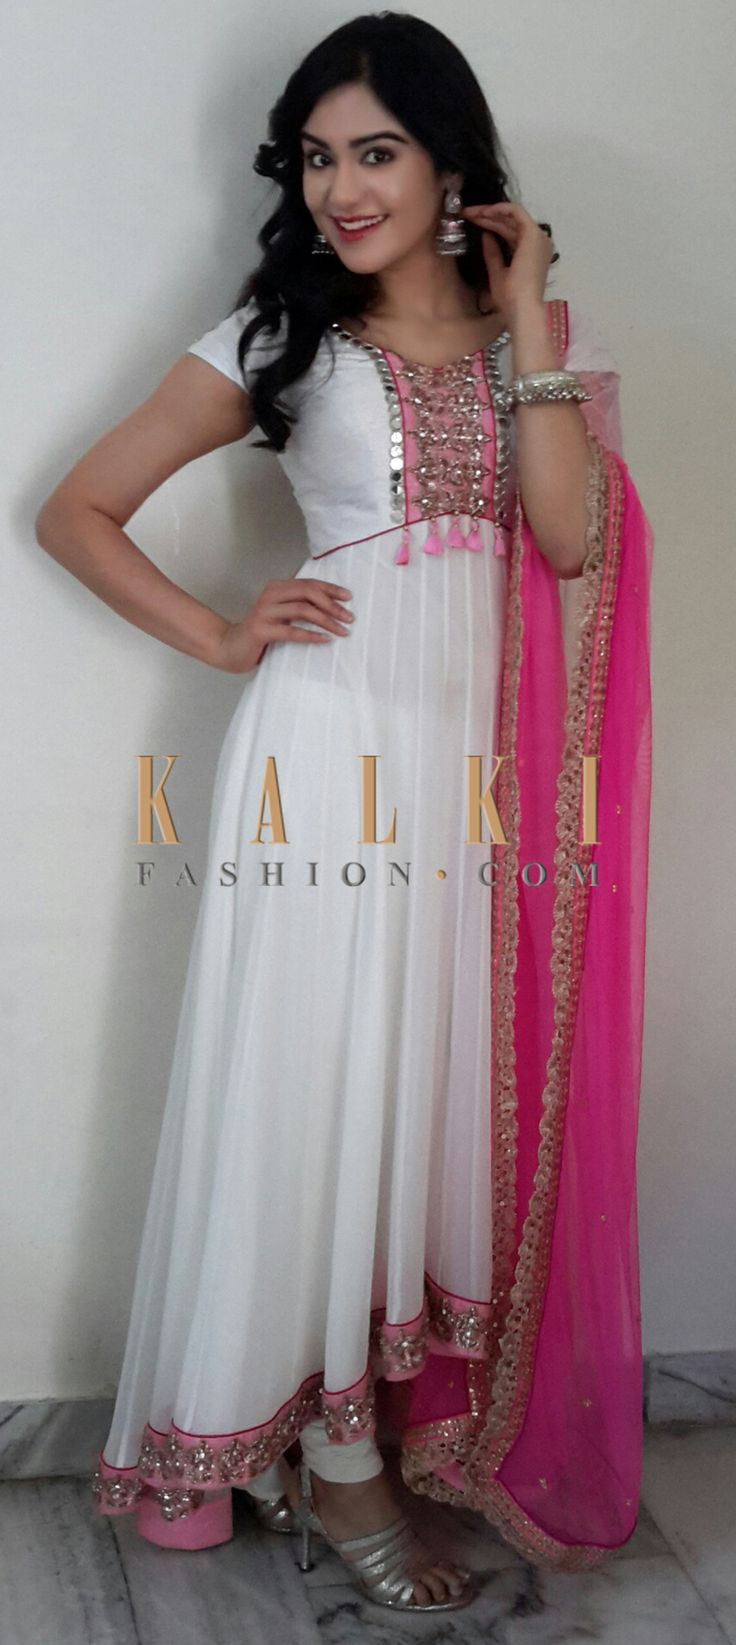 Salwar Kameez Online - Sarees, Suits, Lehengas, Mens Wear ...